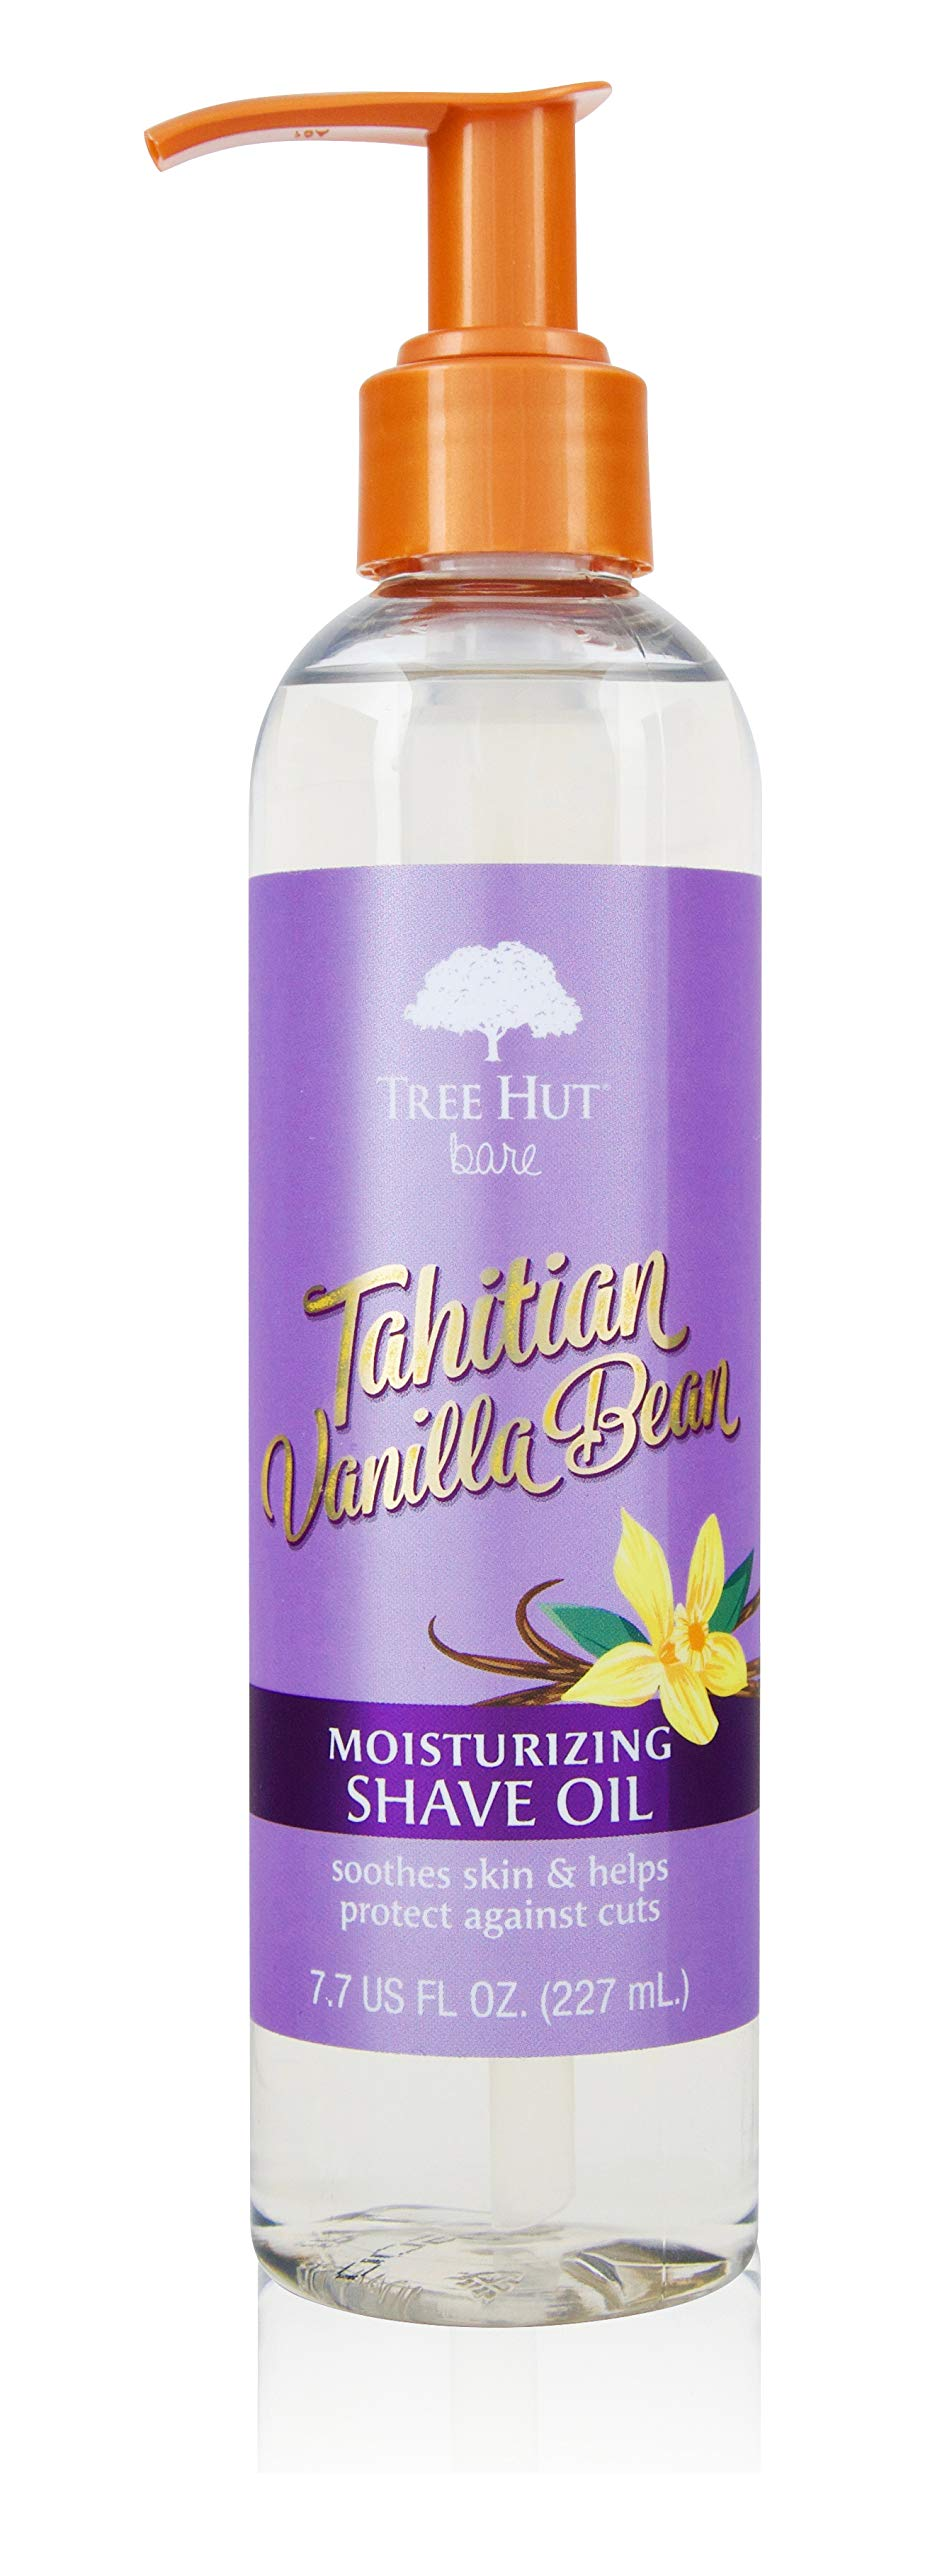 Tree Hut bare Moisturizing Shave Oil, Tahitian Bean, Vanilla, 7.7 Fl Oz